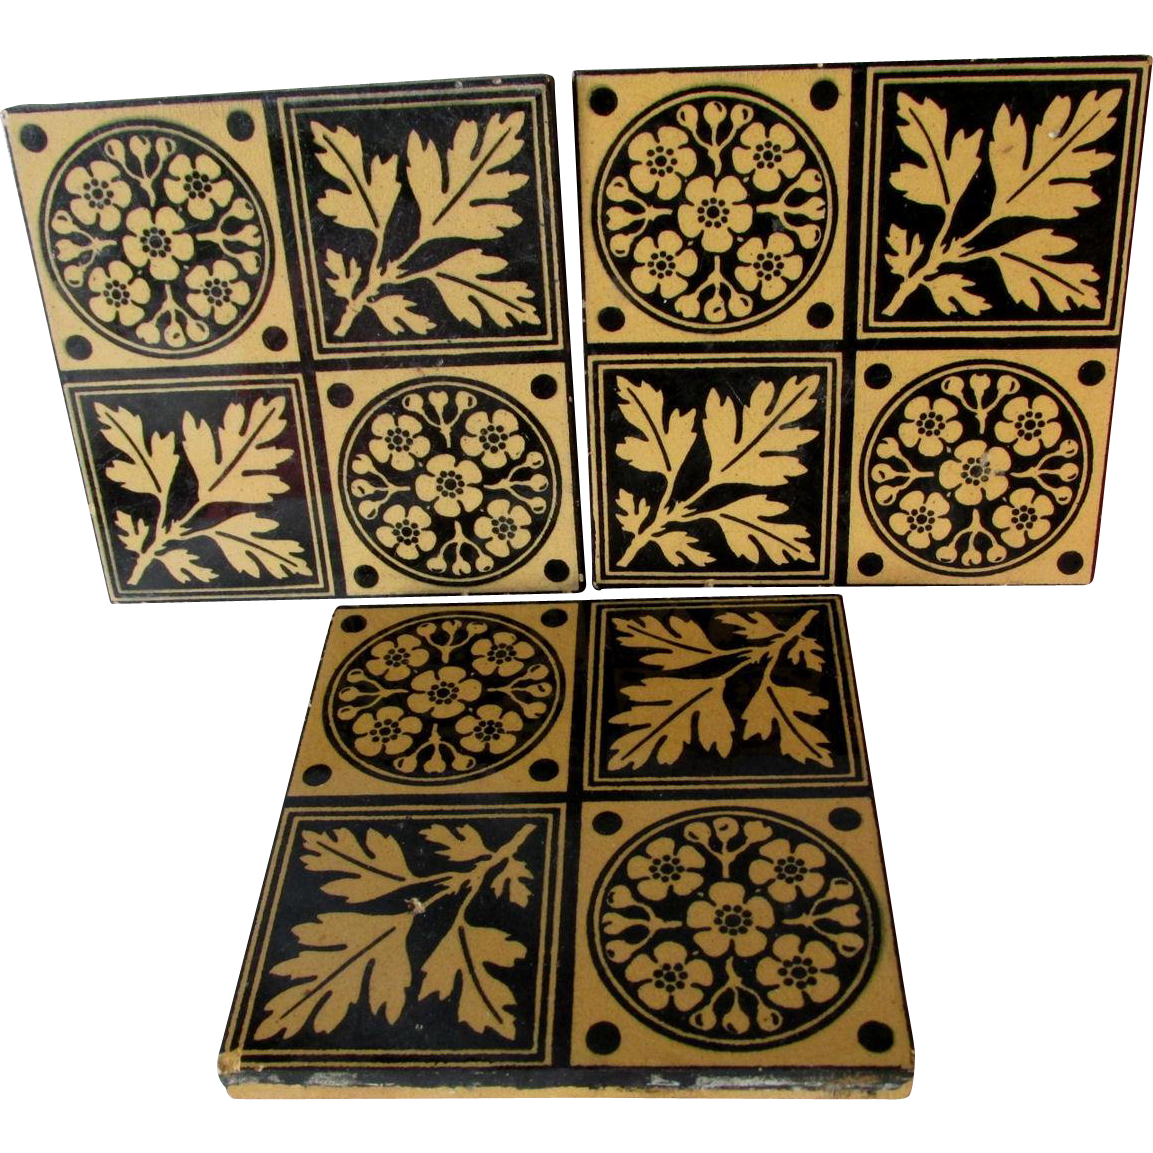 3 Minton Aesthetic, Arts & Crafts Art Pottery Architectural Tiles